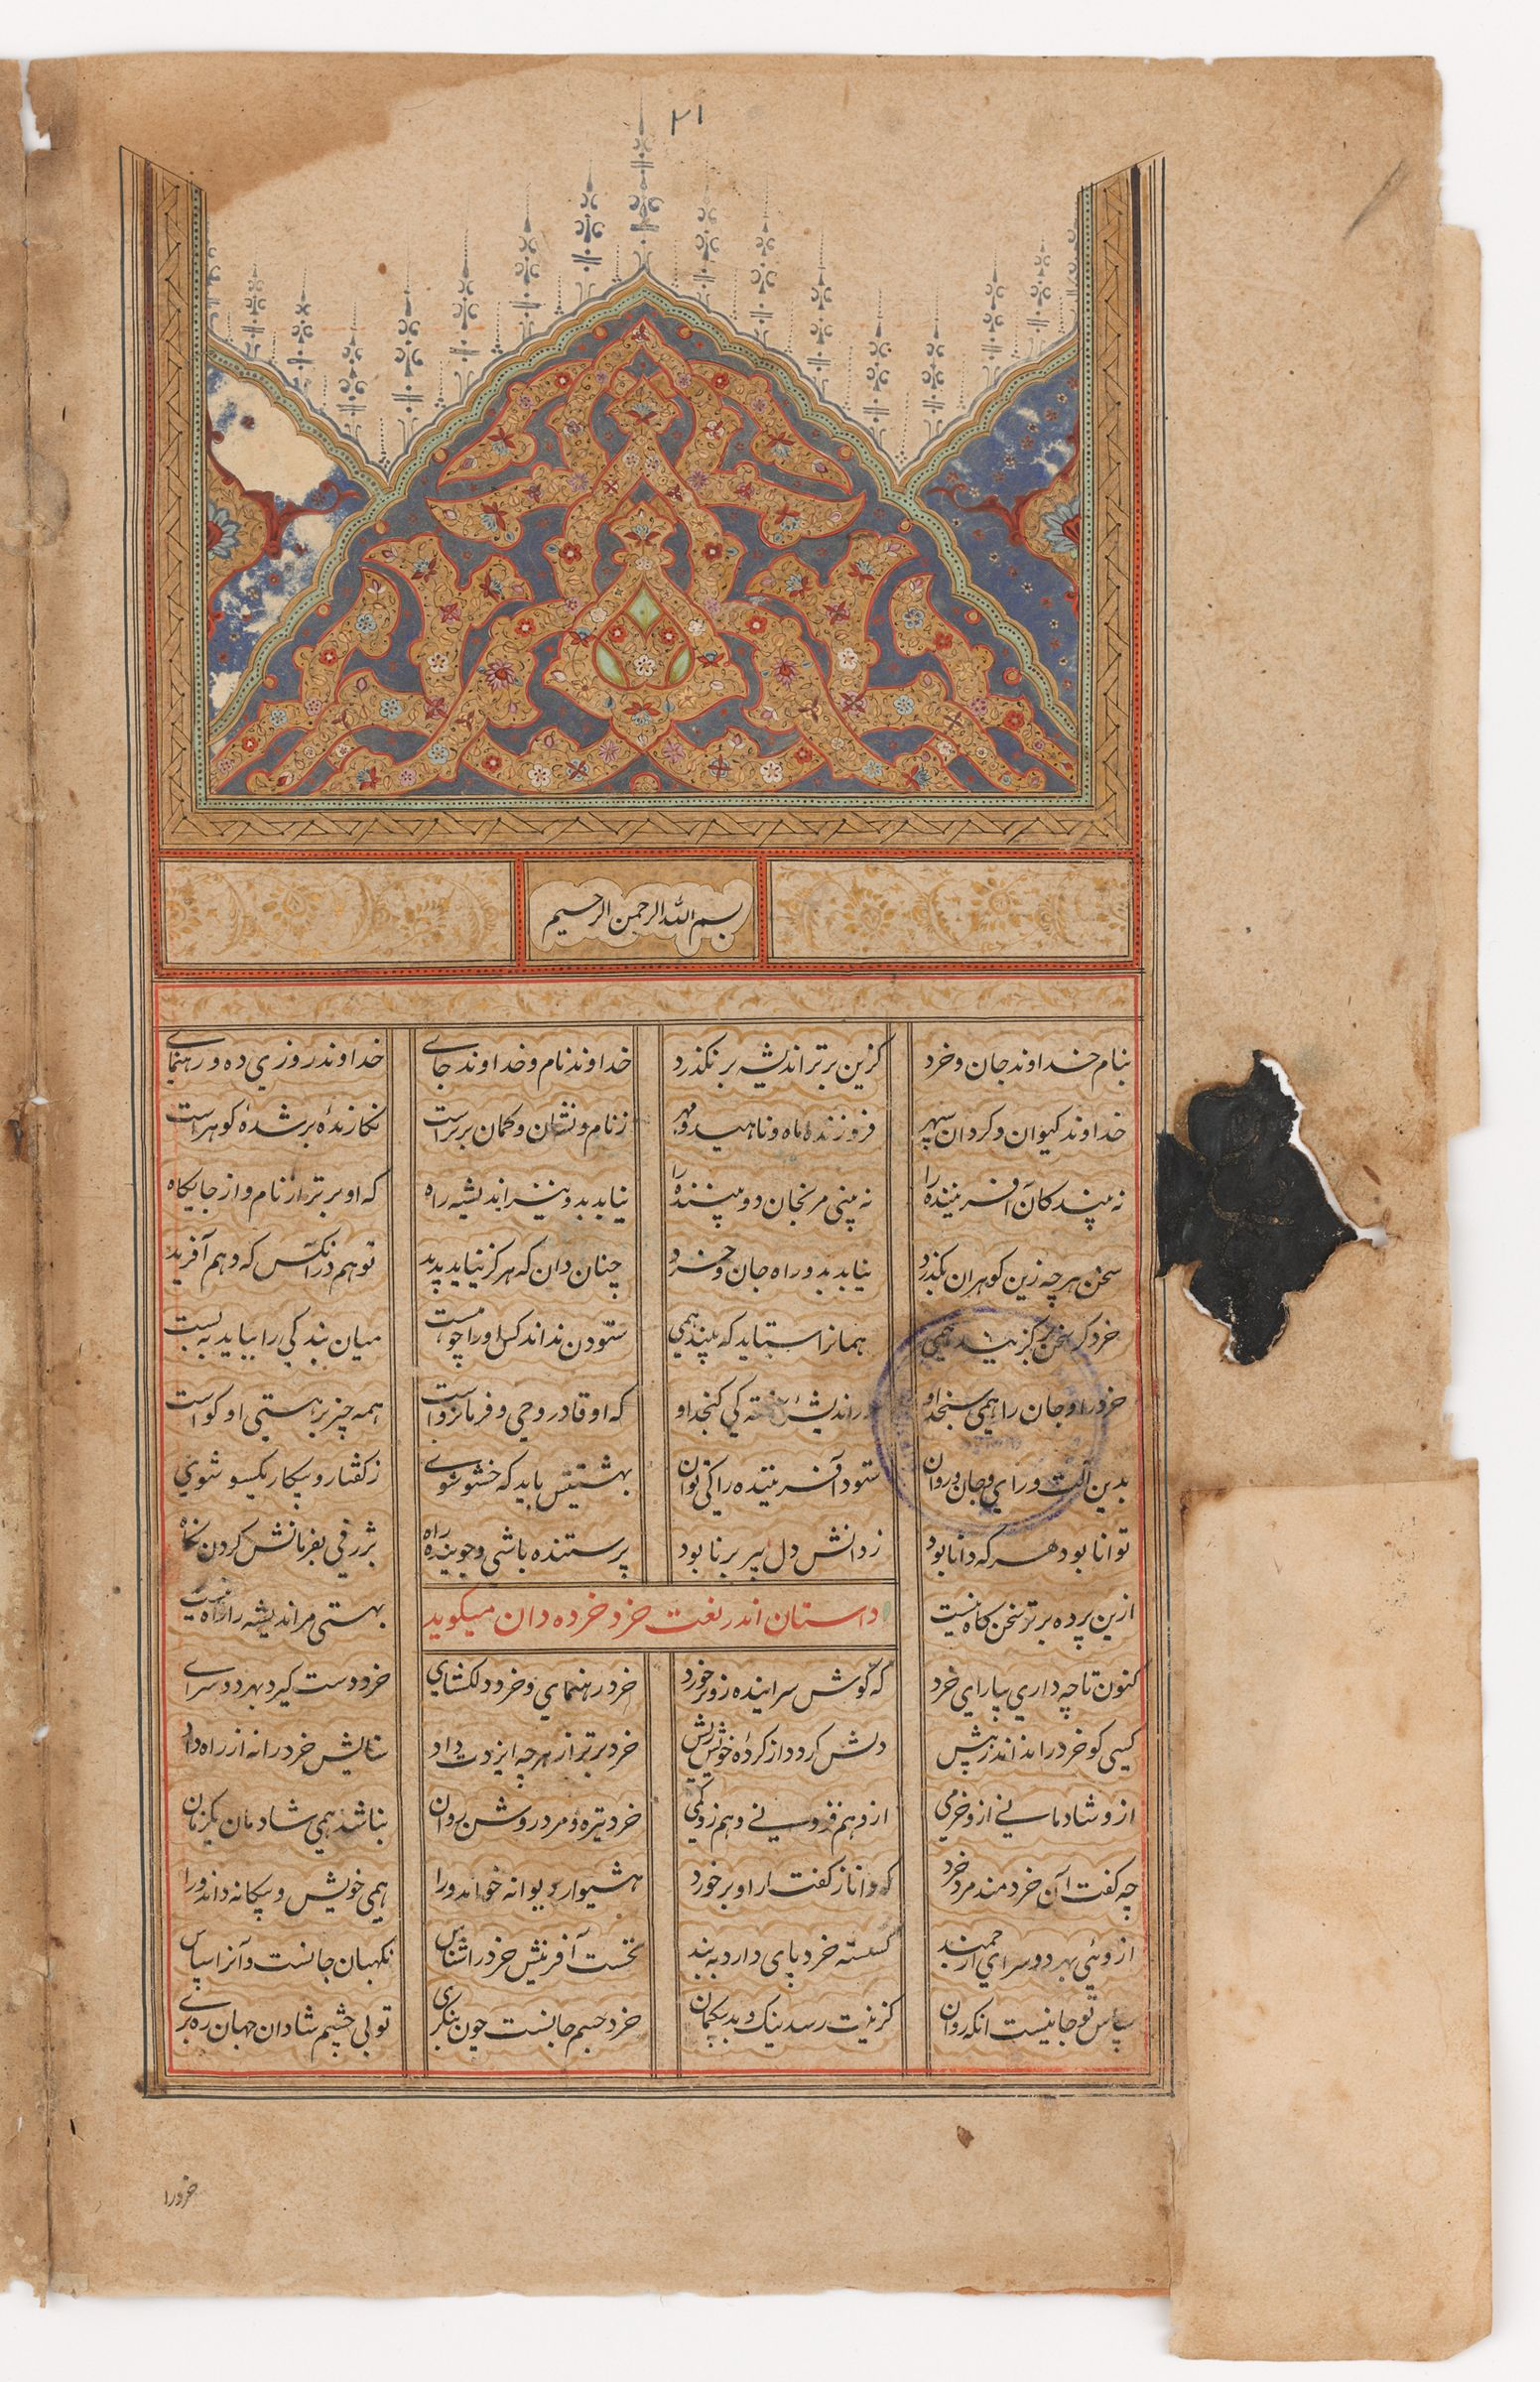 Illustrated Manuscript Of The Shahnama By Firdawsi With Interpolations From The Garshaspnama By Tusi And The Barzunama